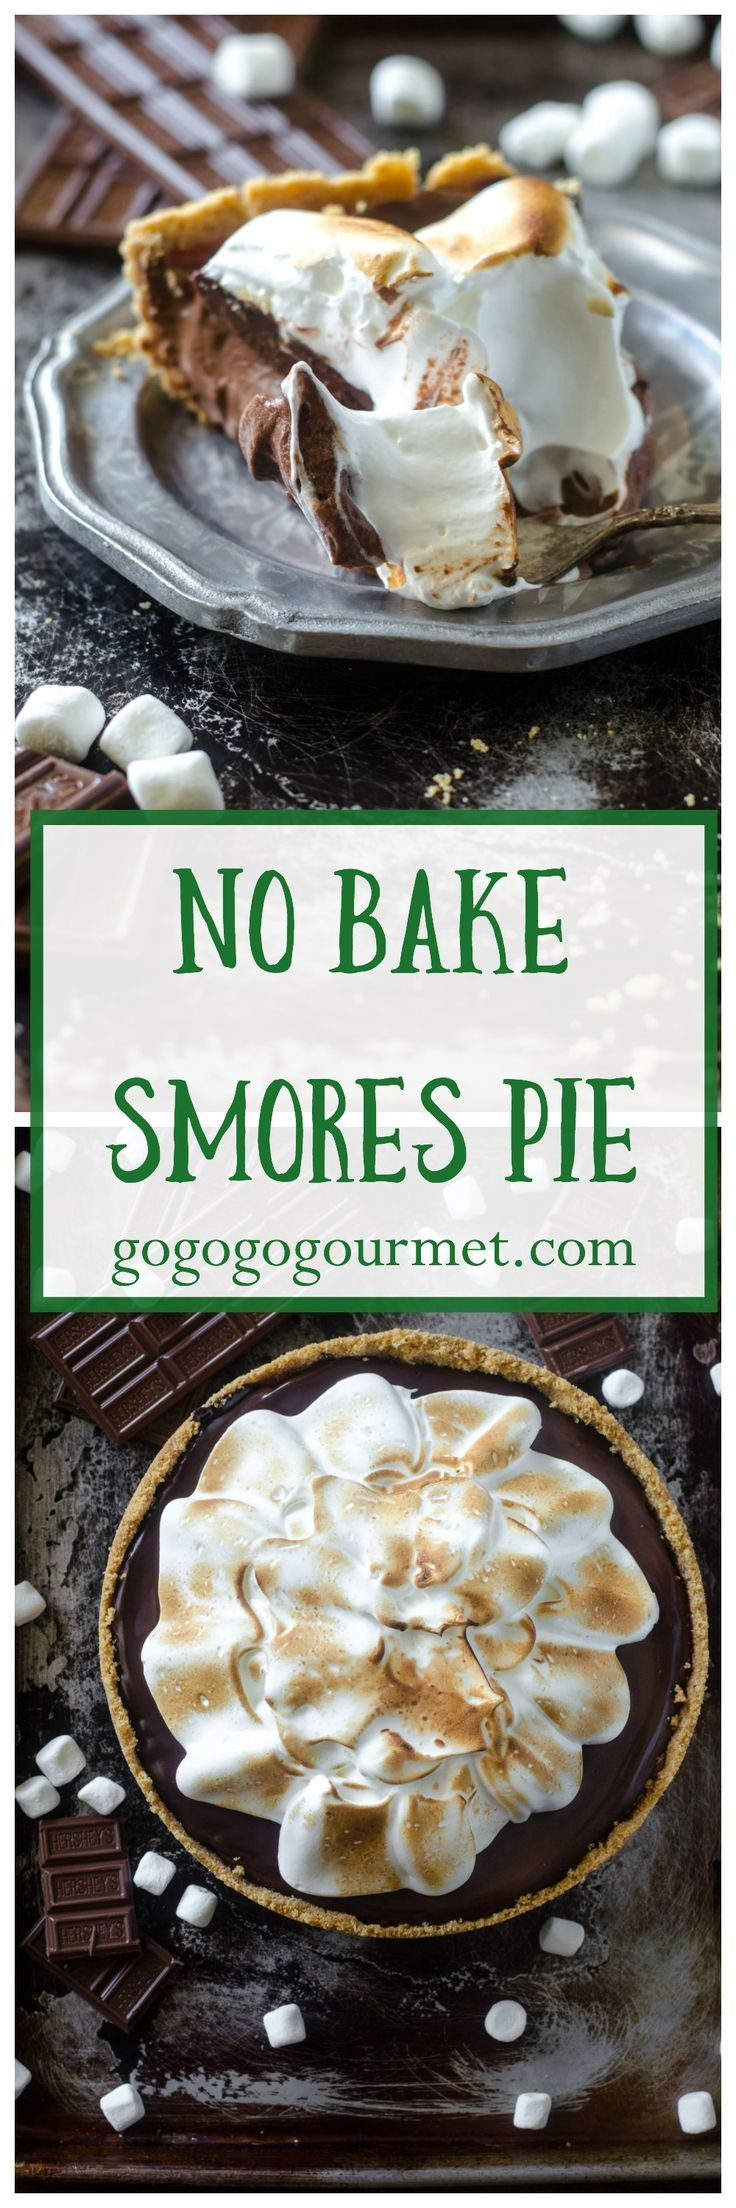 This No Bake Smores Pie is so incredible, you'll never believe that its semi-homemade! | Go Go Go Gourmet @Go Go Go Gourmet